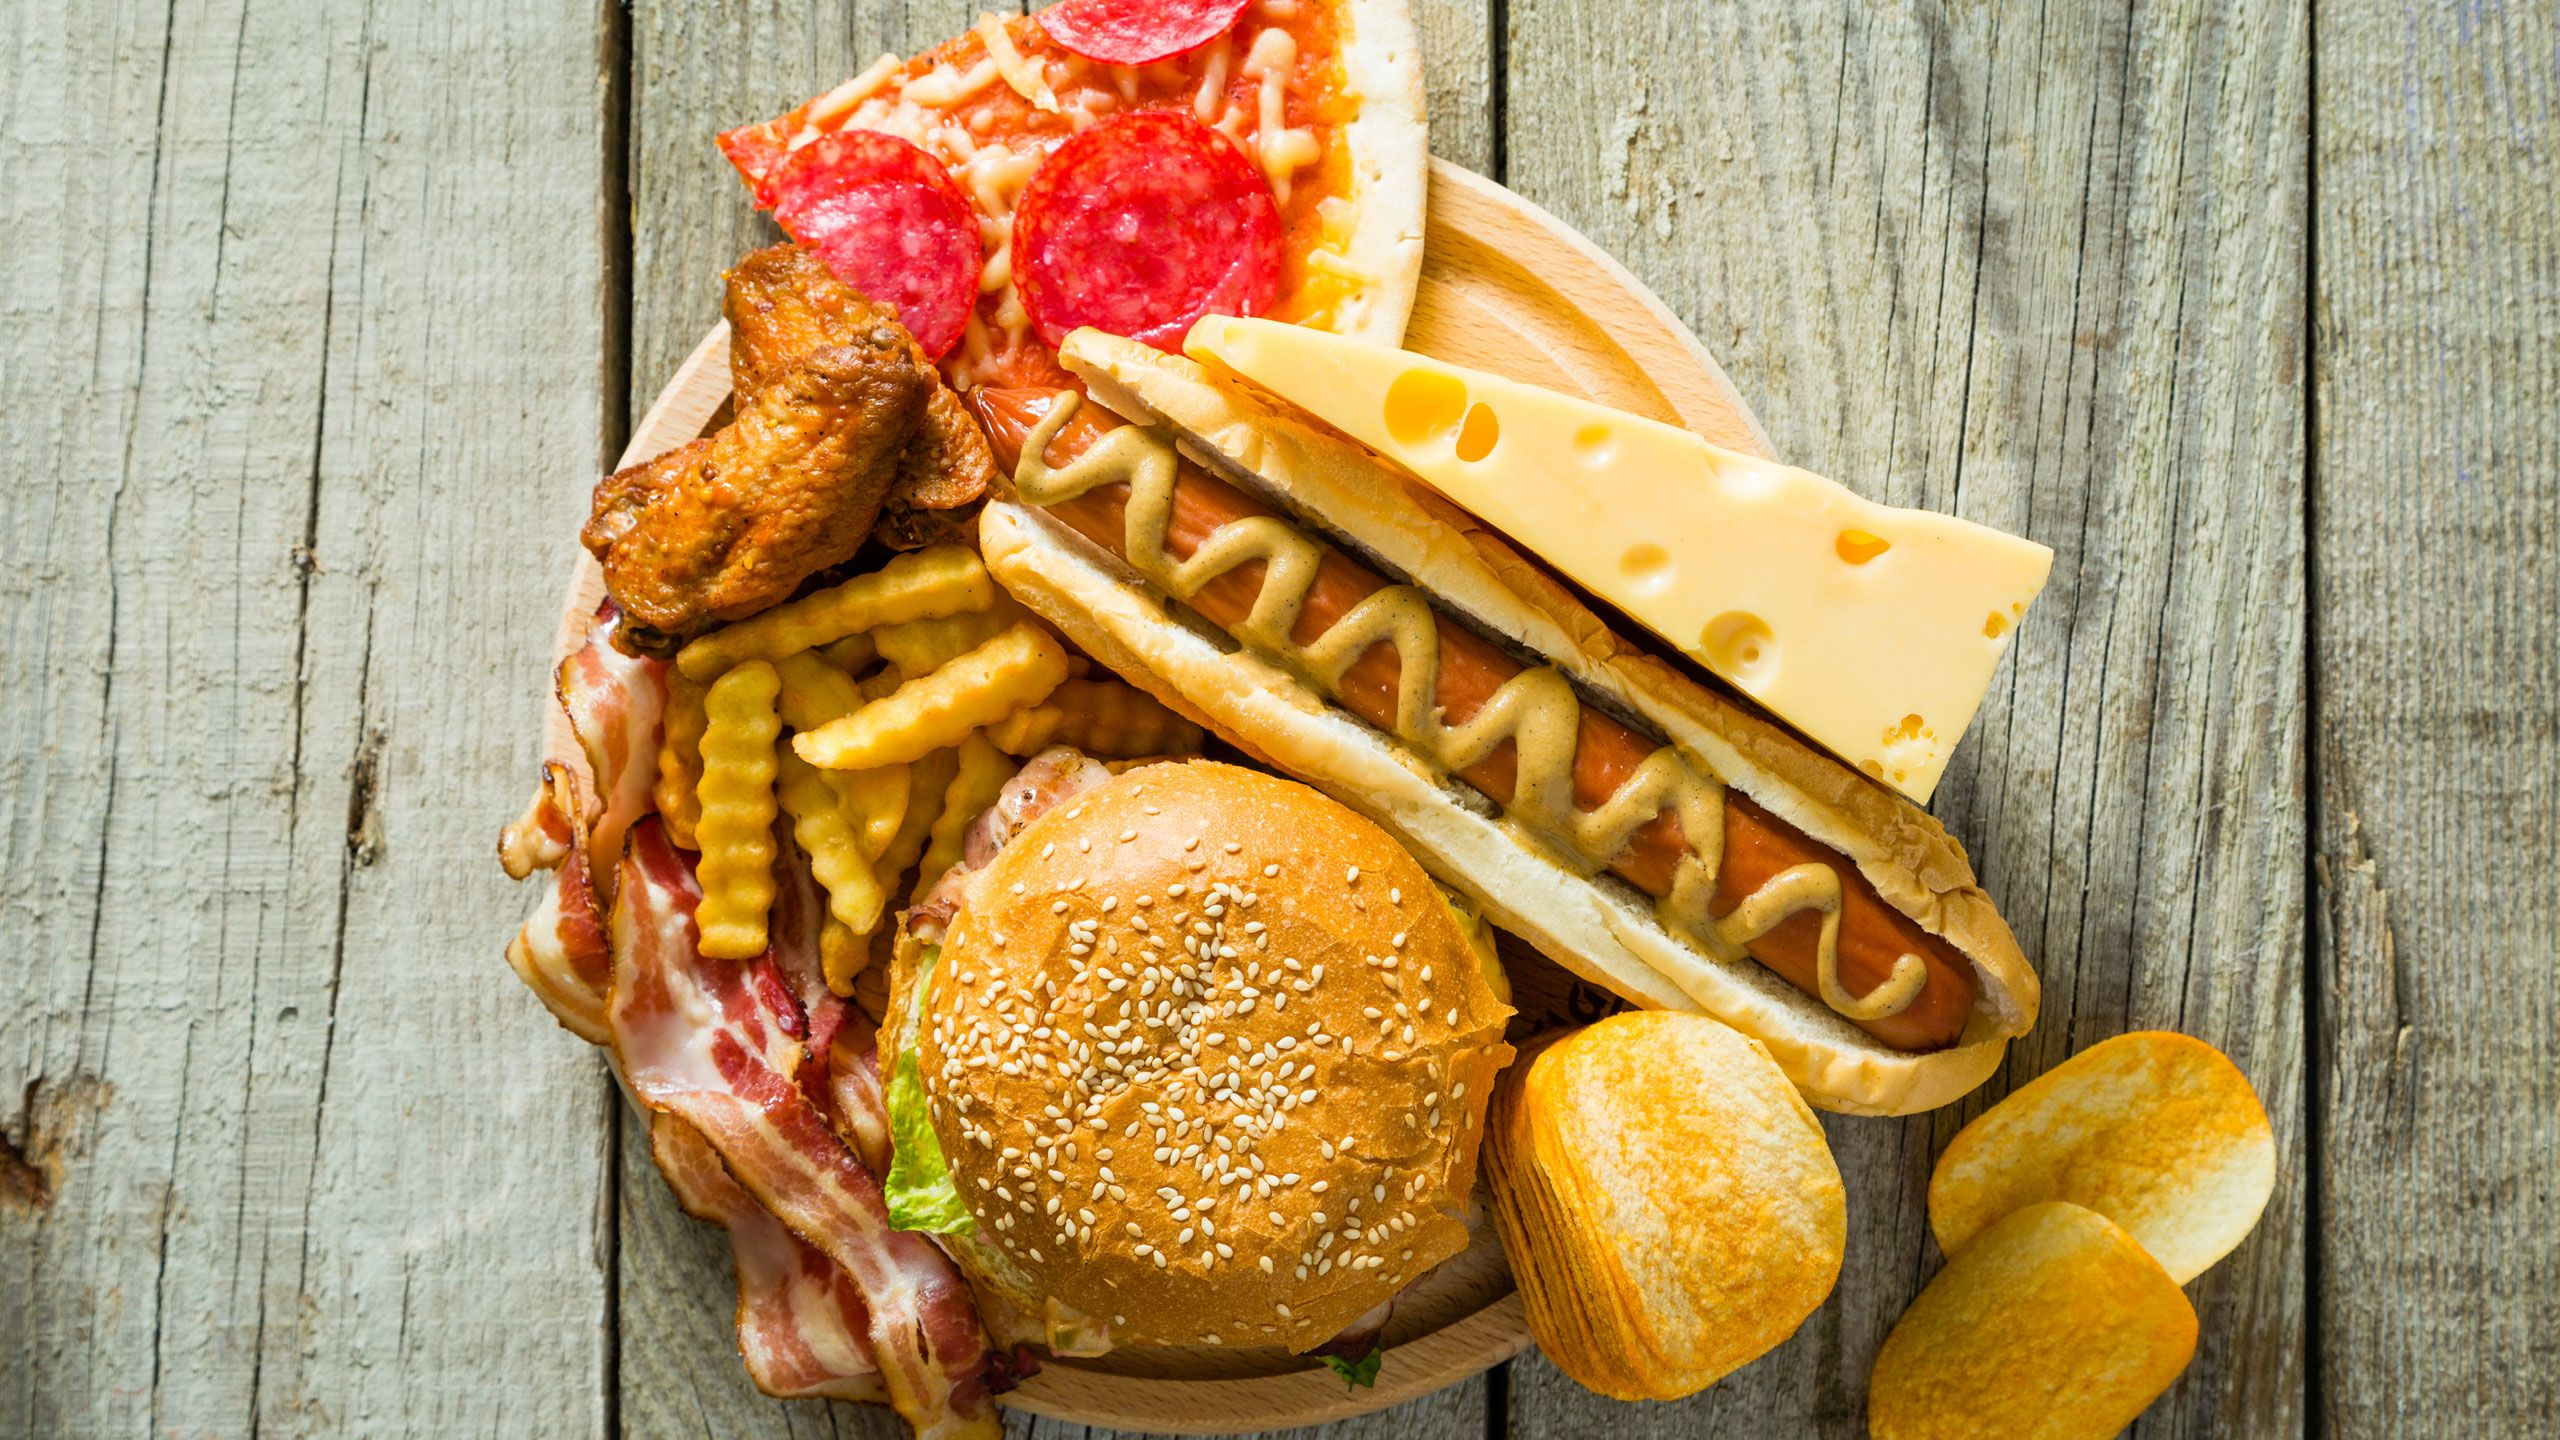 5 Ways to Bounce Back After a Food Binge